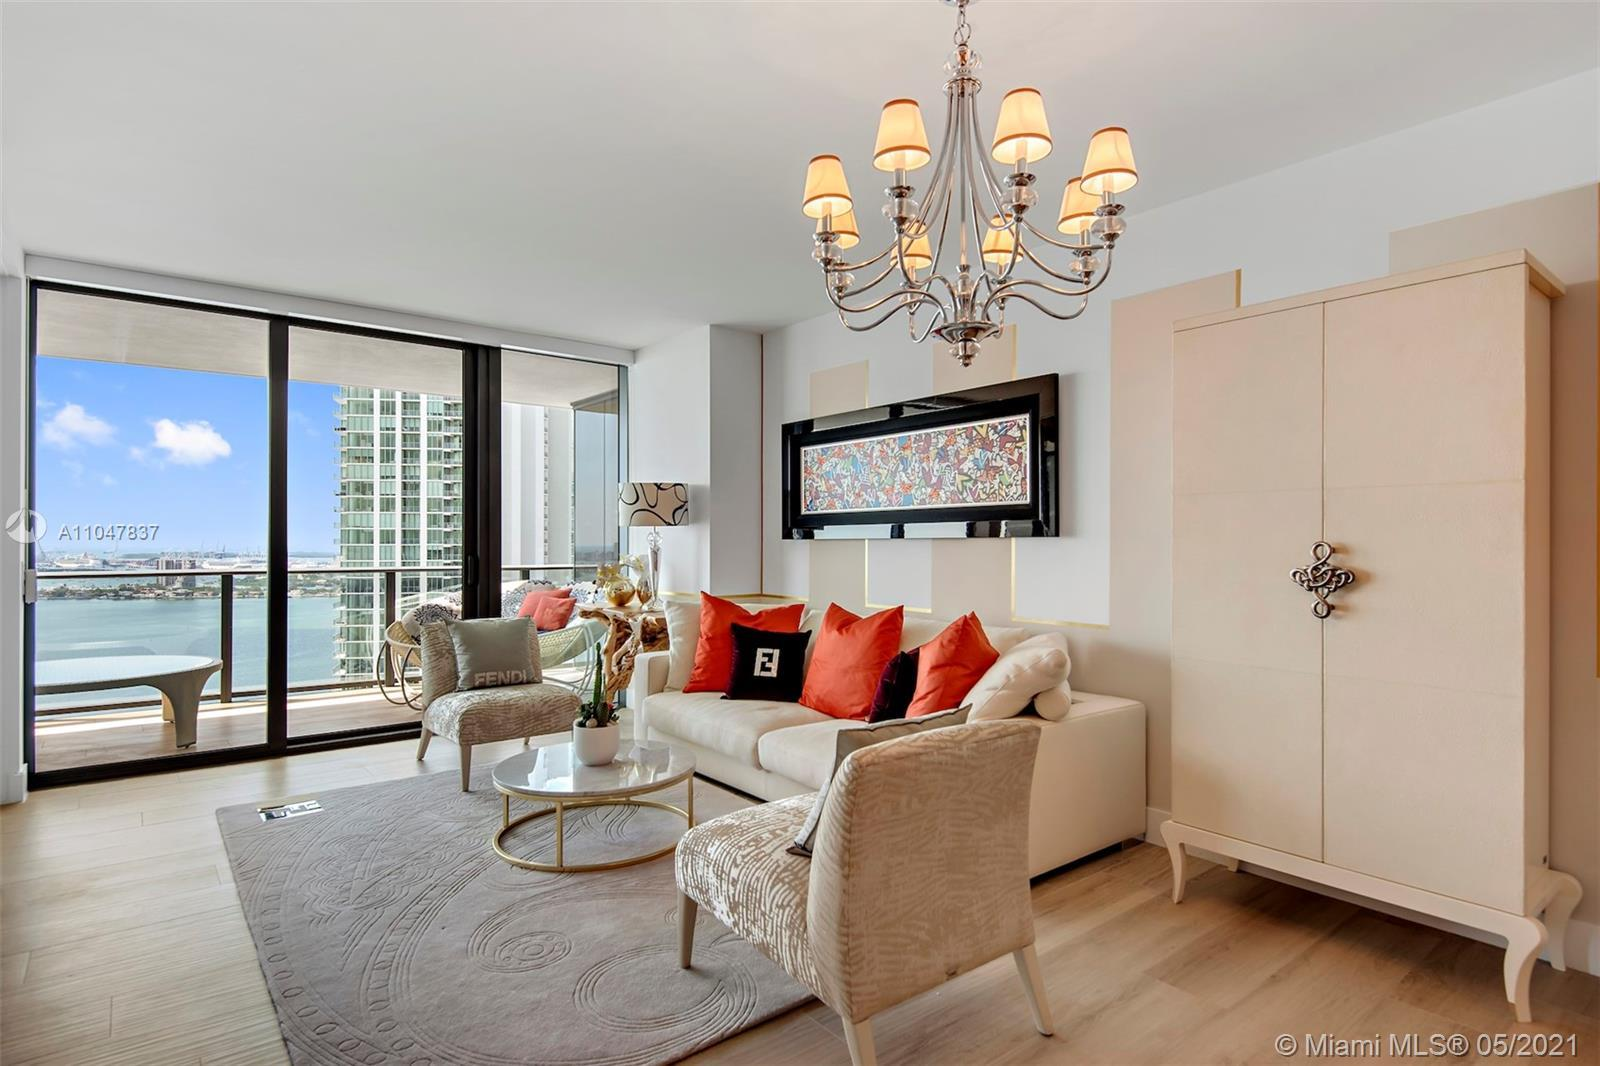 This stunning 2 bedrooms/3 bathrooms+DEN unit (1,301 Sqf.) with extended balcony on 38th floor, has